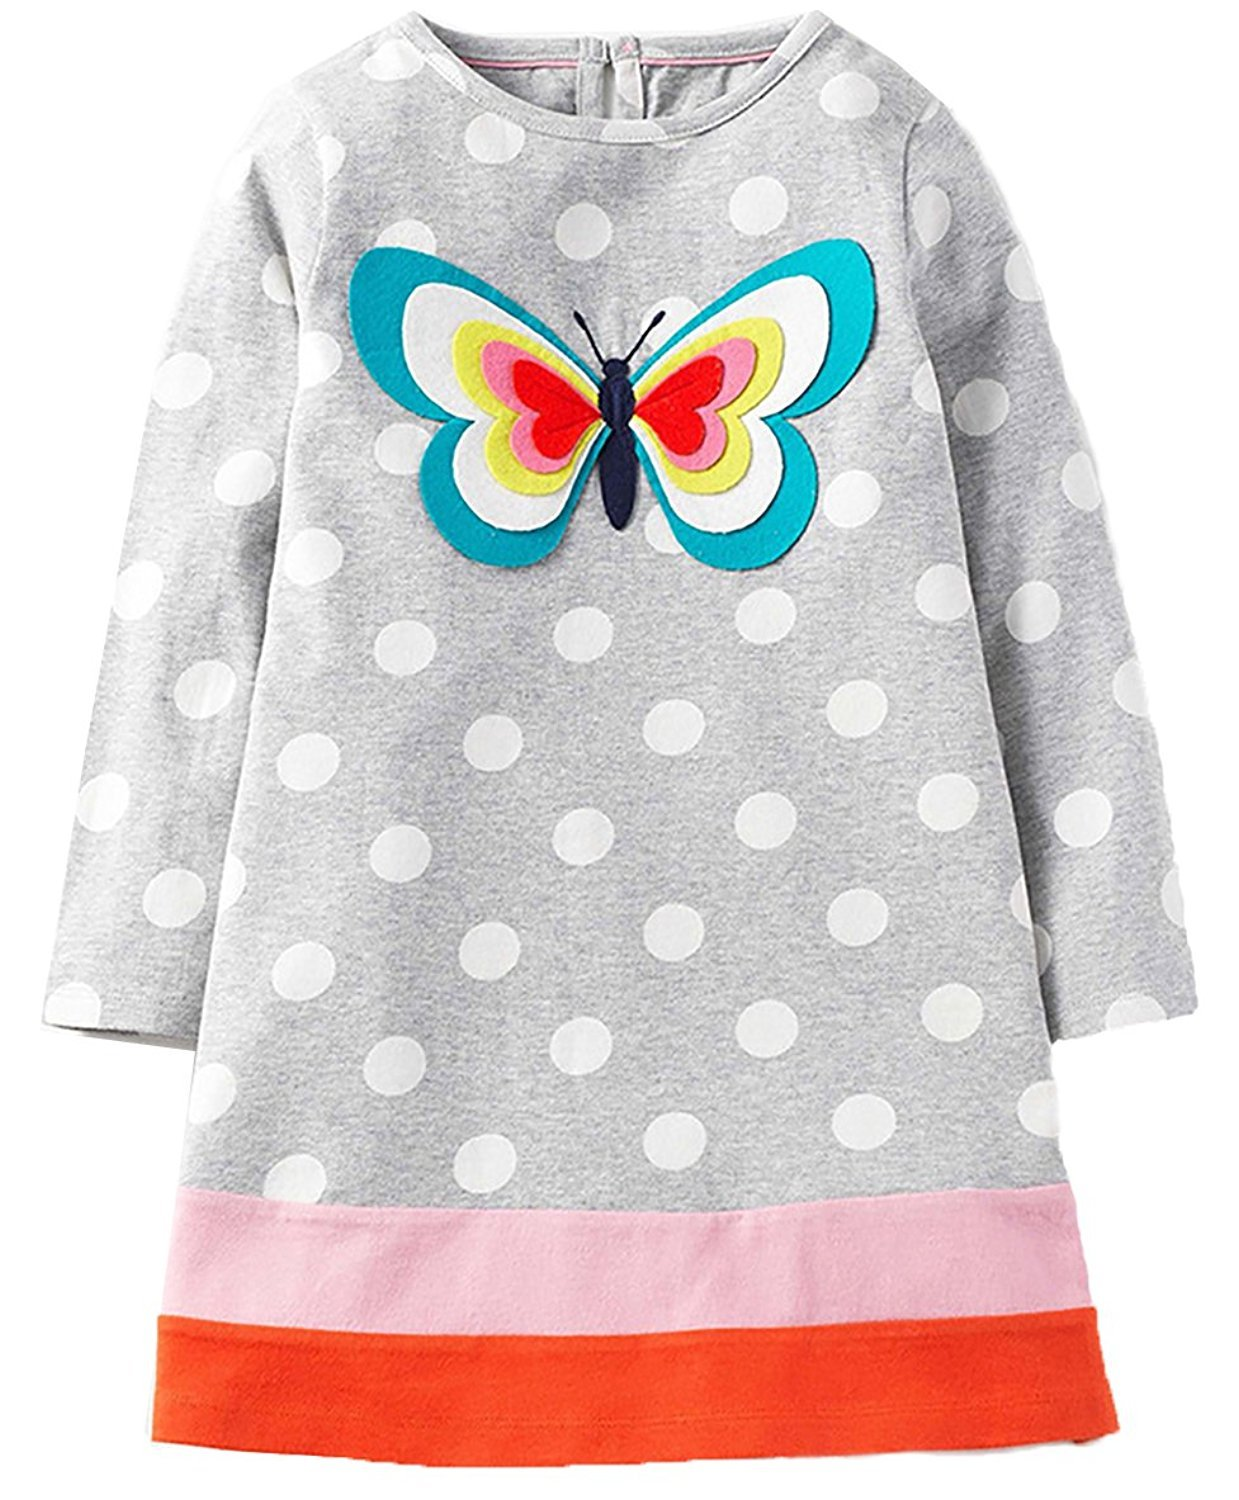 Girls Cotton Long Sleeve Casual Cartoon Appliques Striped Jersey Dresses (5T, Butterfly)